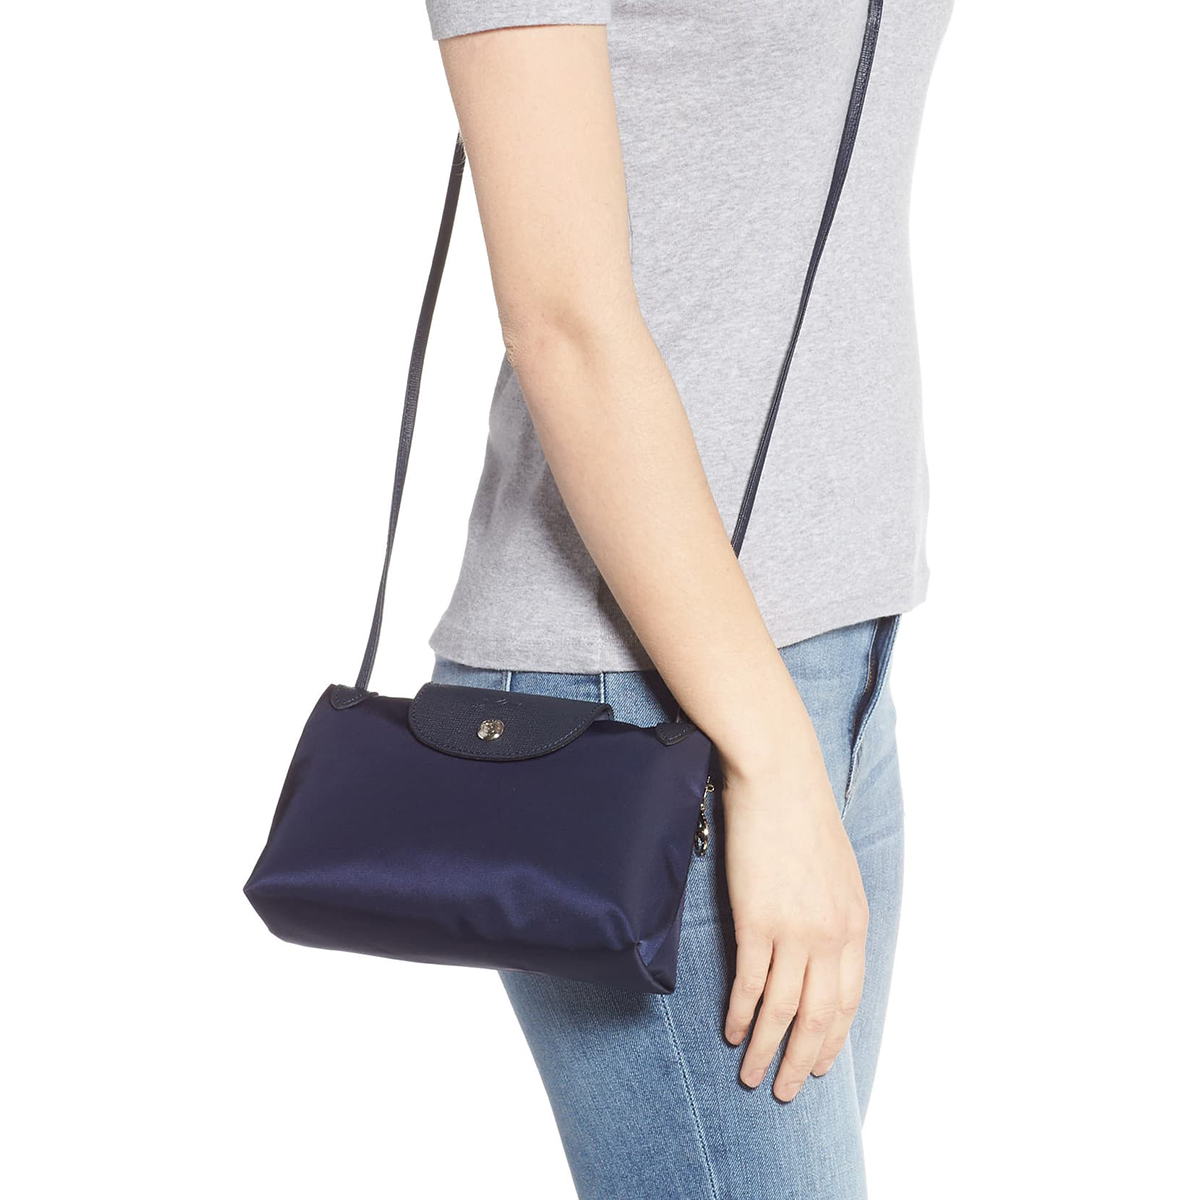 415d3e9ba8 This Sporty-Chic Crossbody Bag Holds So Much More Than You'd Expect